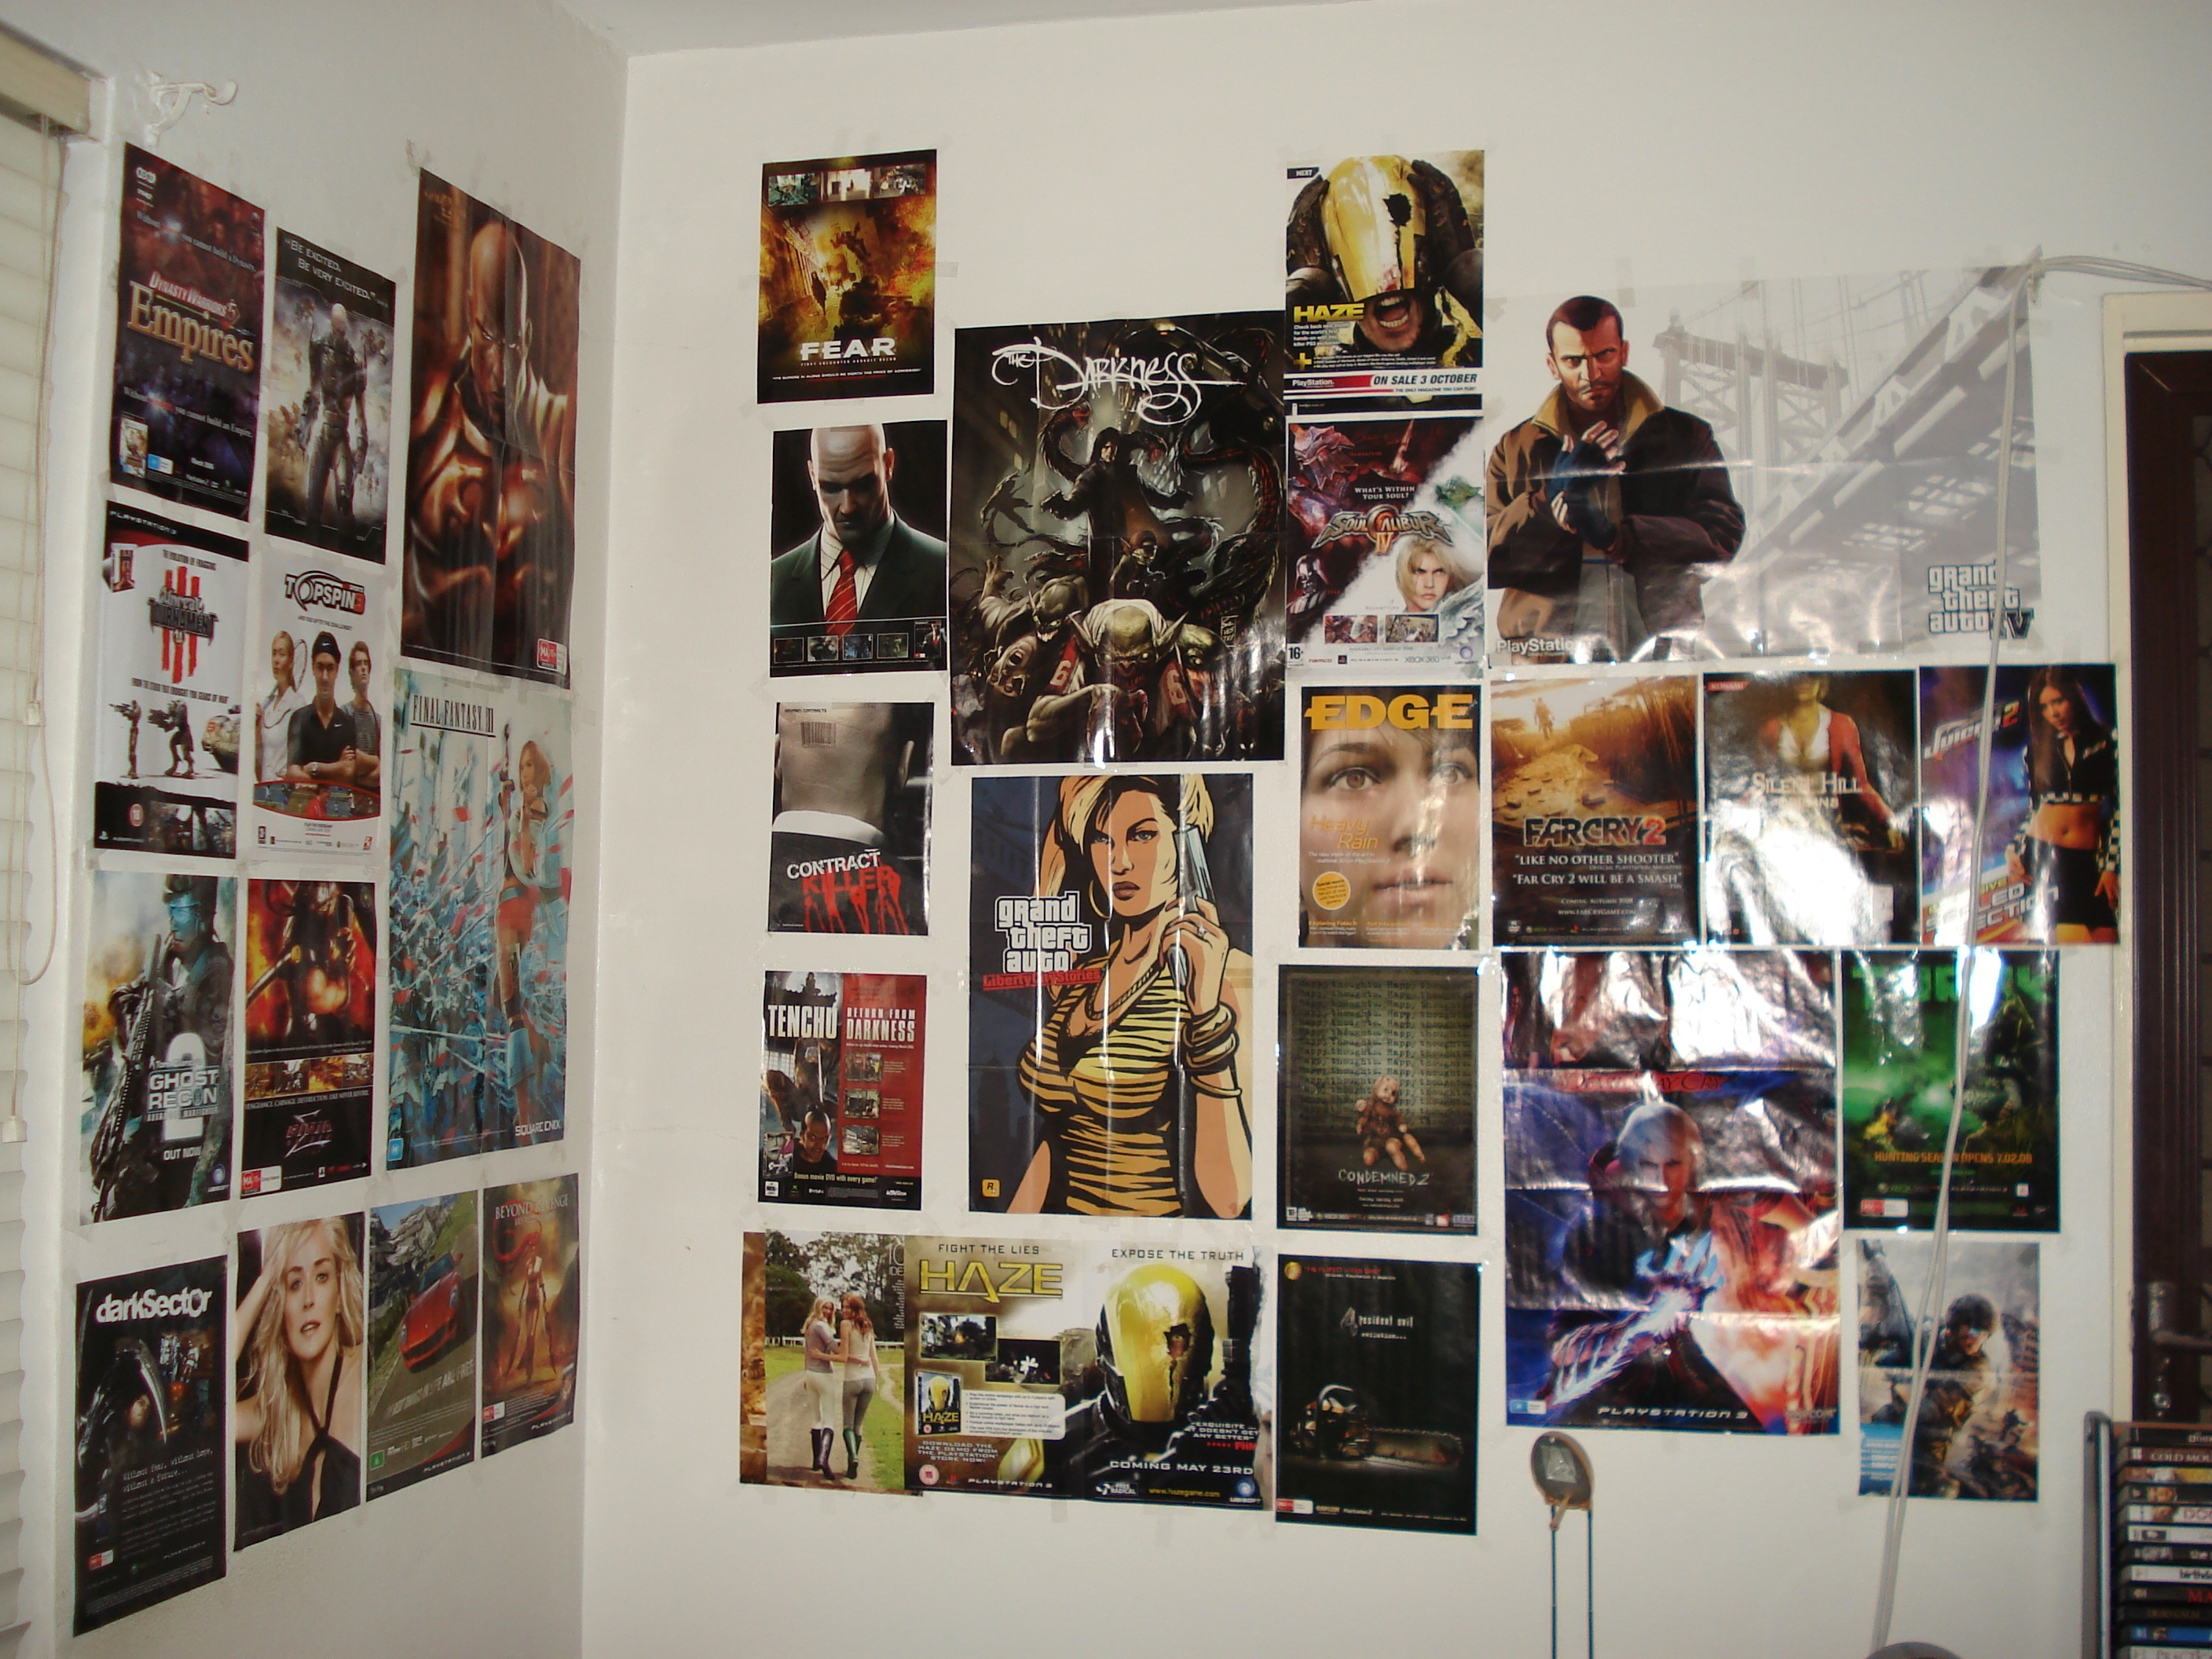 Bedroom wall with posters - Bedroom Posters This Is My Bedroom S Wall With Game Posters From Thm Hosted By